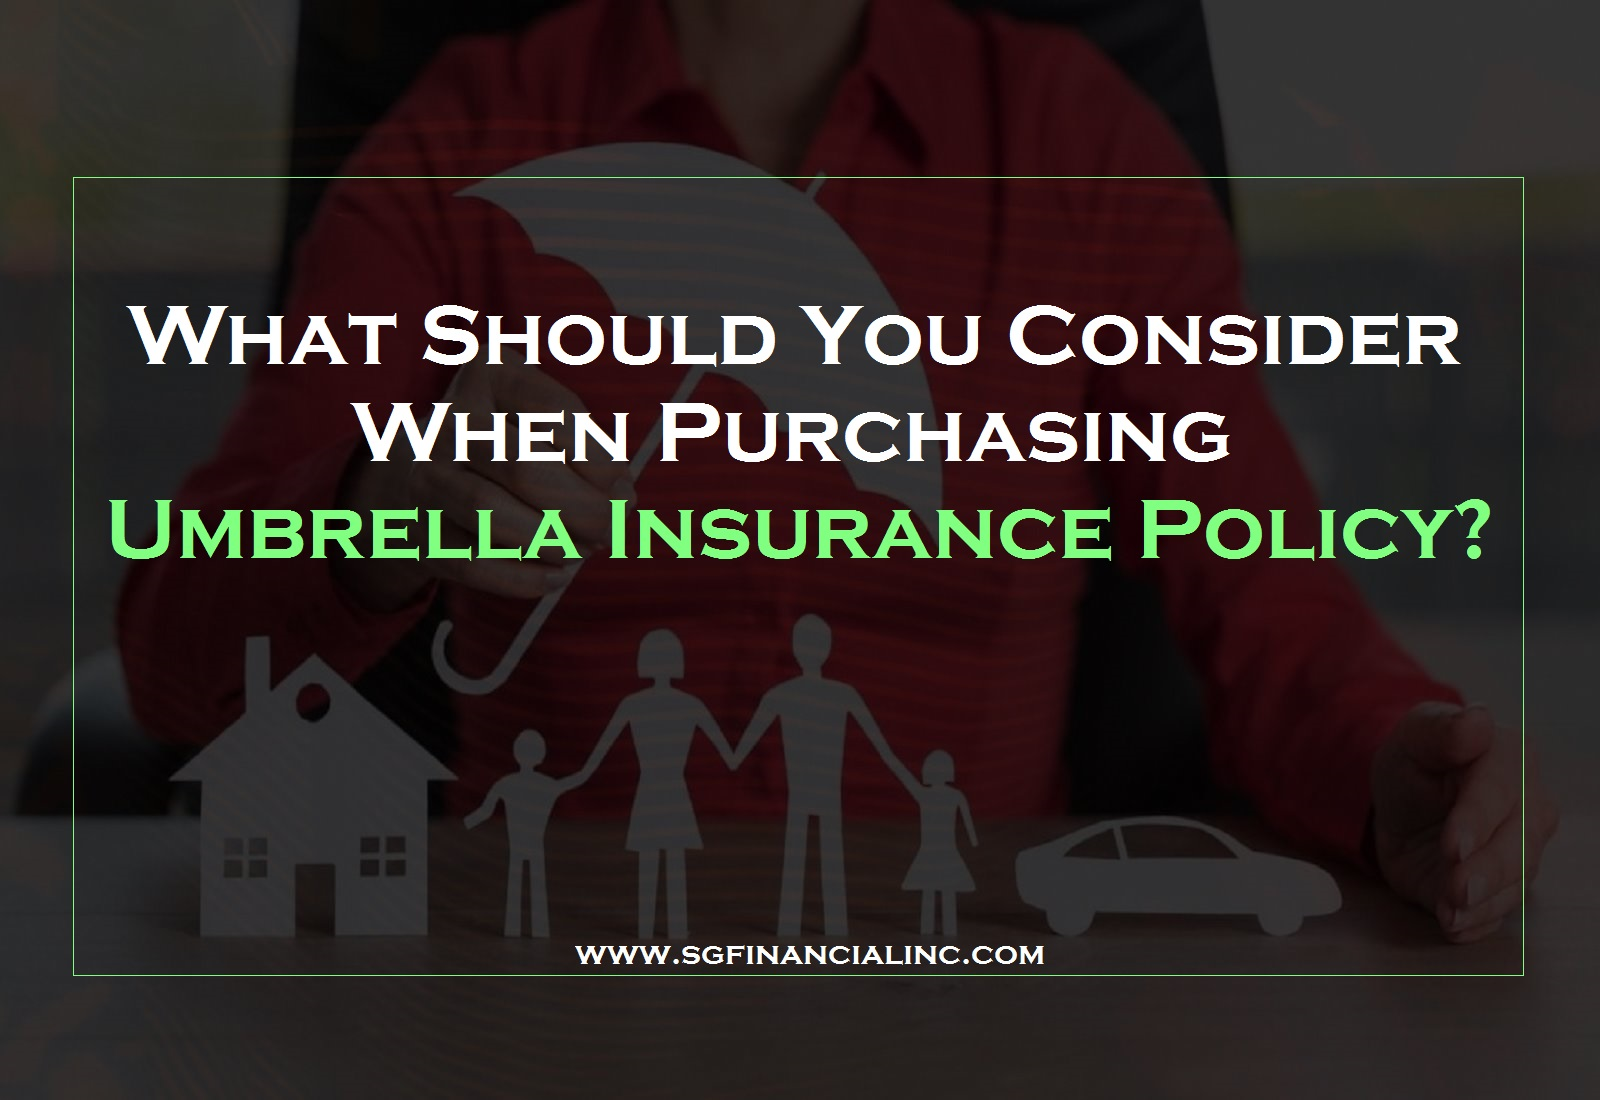 What Should You Consider When Purchasing Umbrella Insurance Policy?